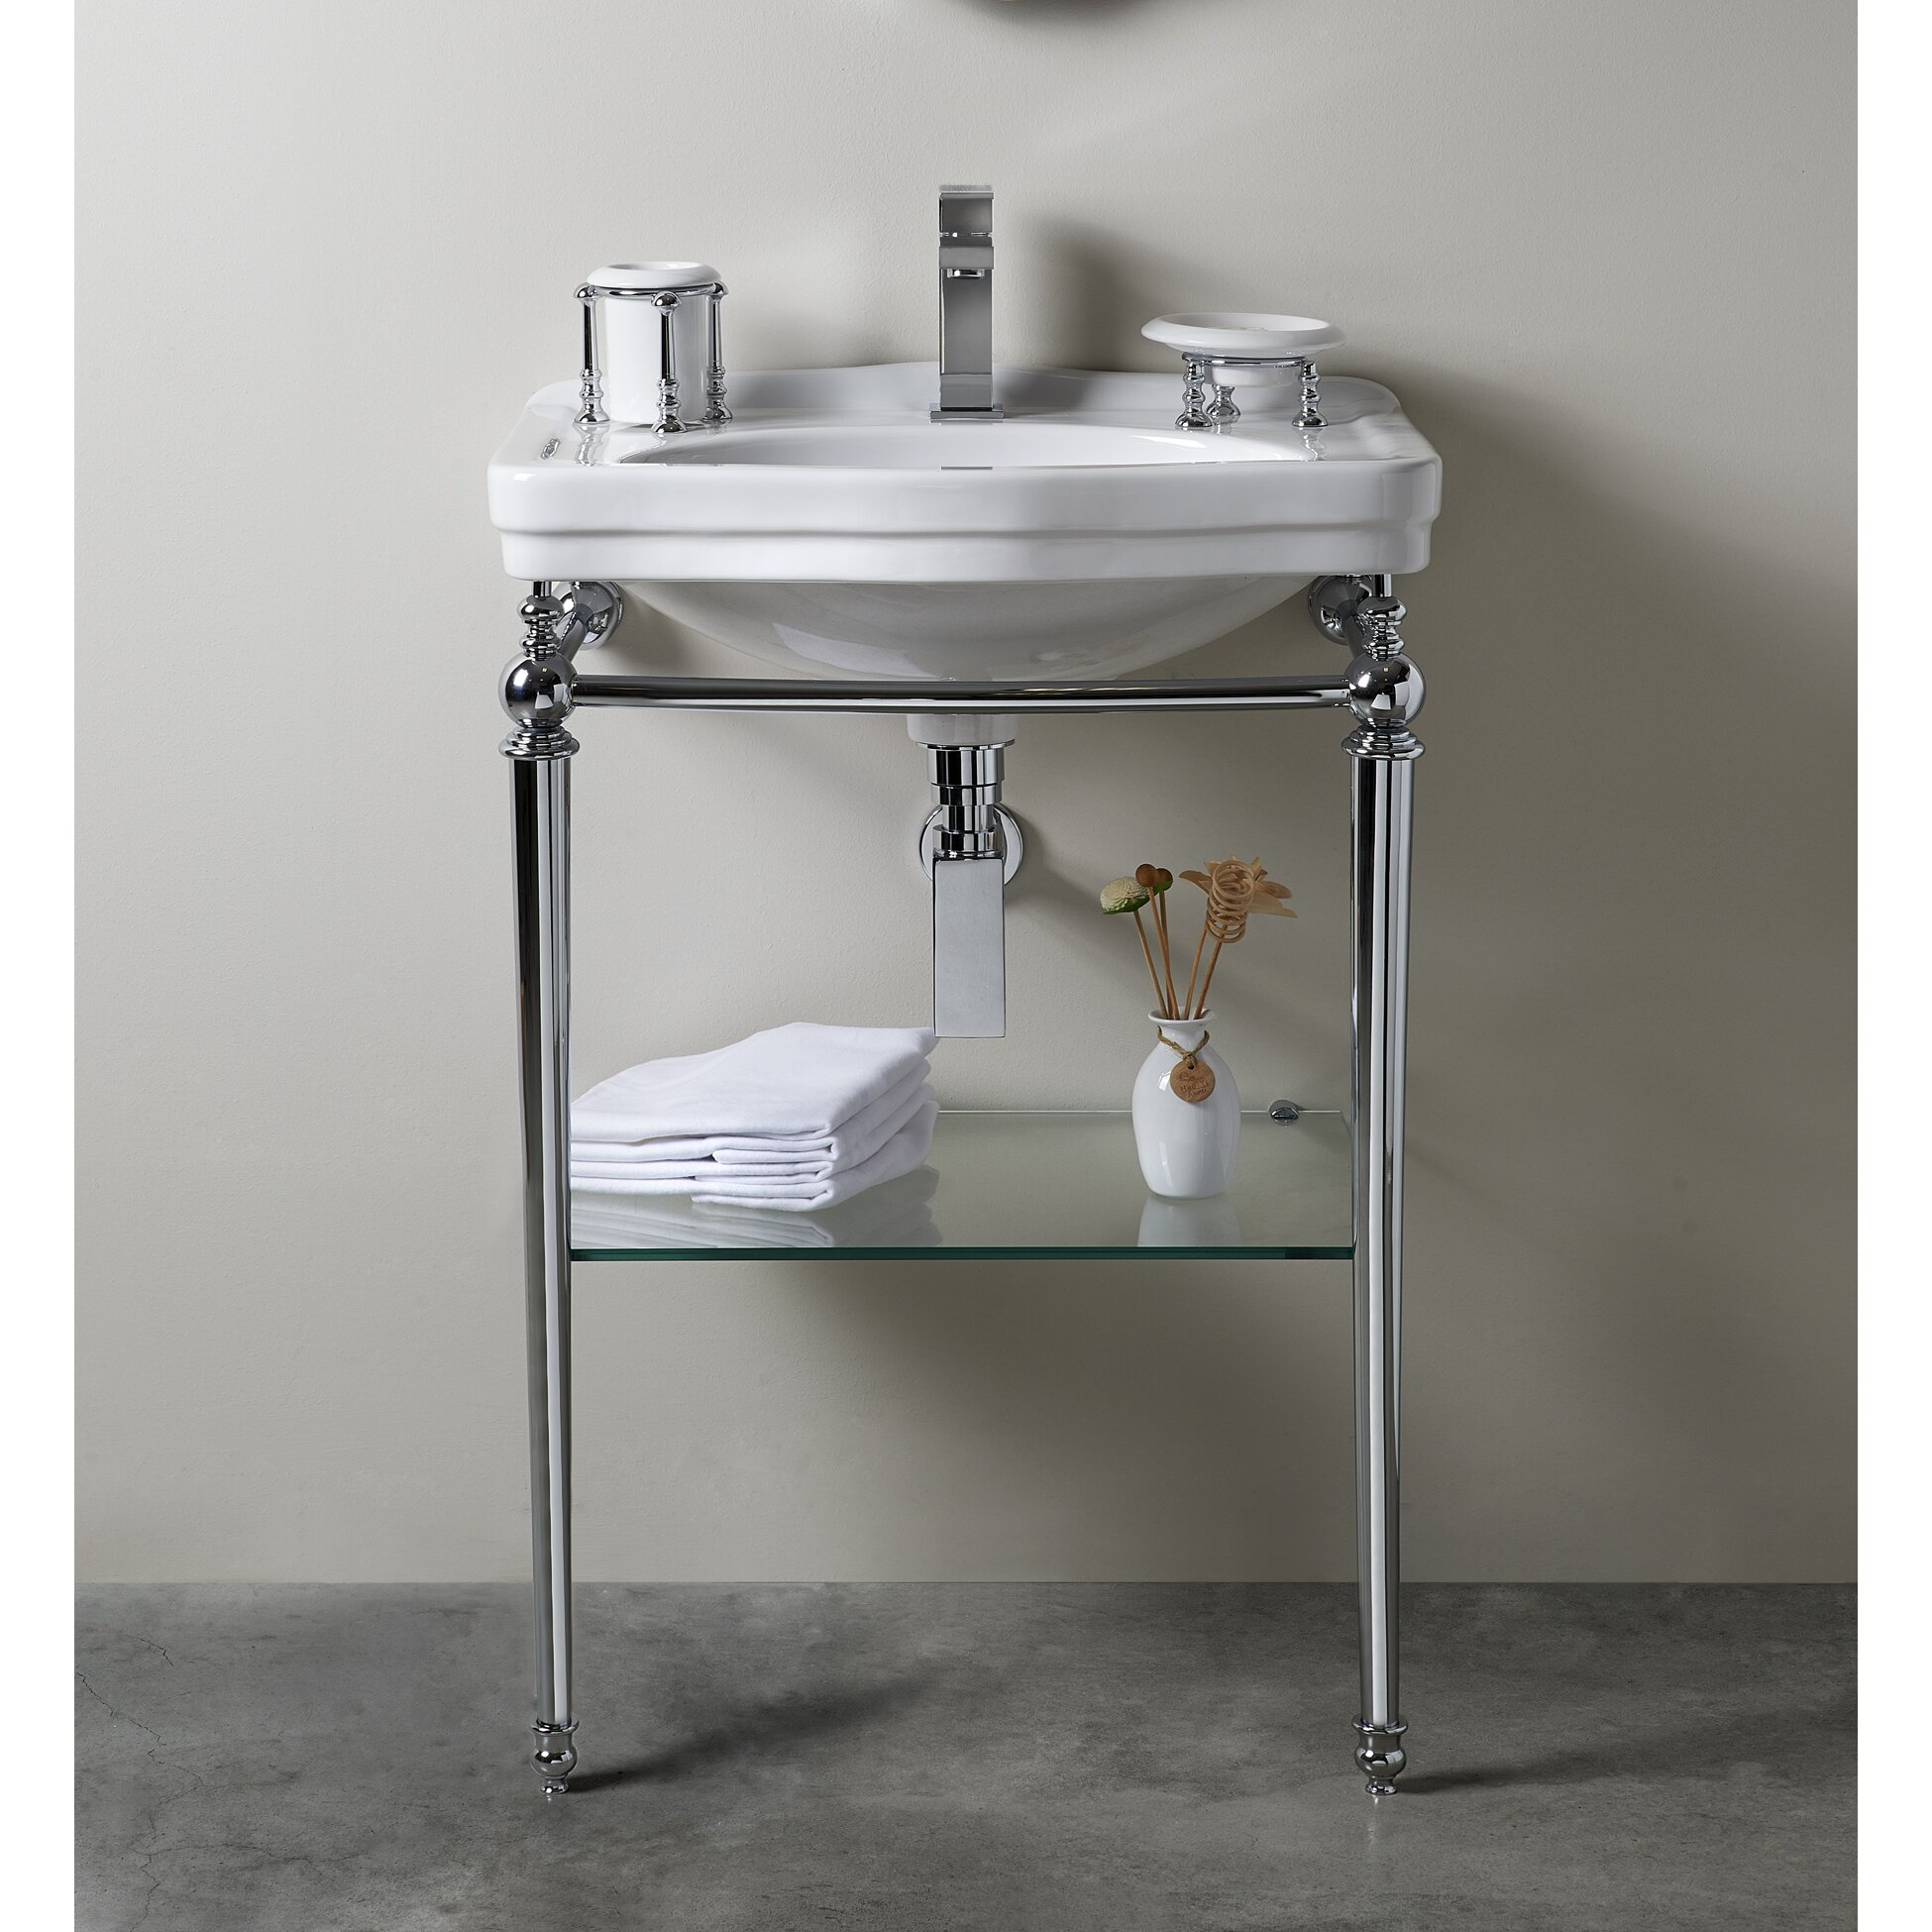 Model Freestanding Bathroom Sink Vanity With Shelf Under